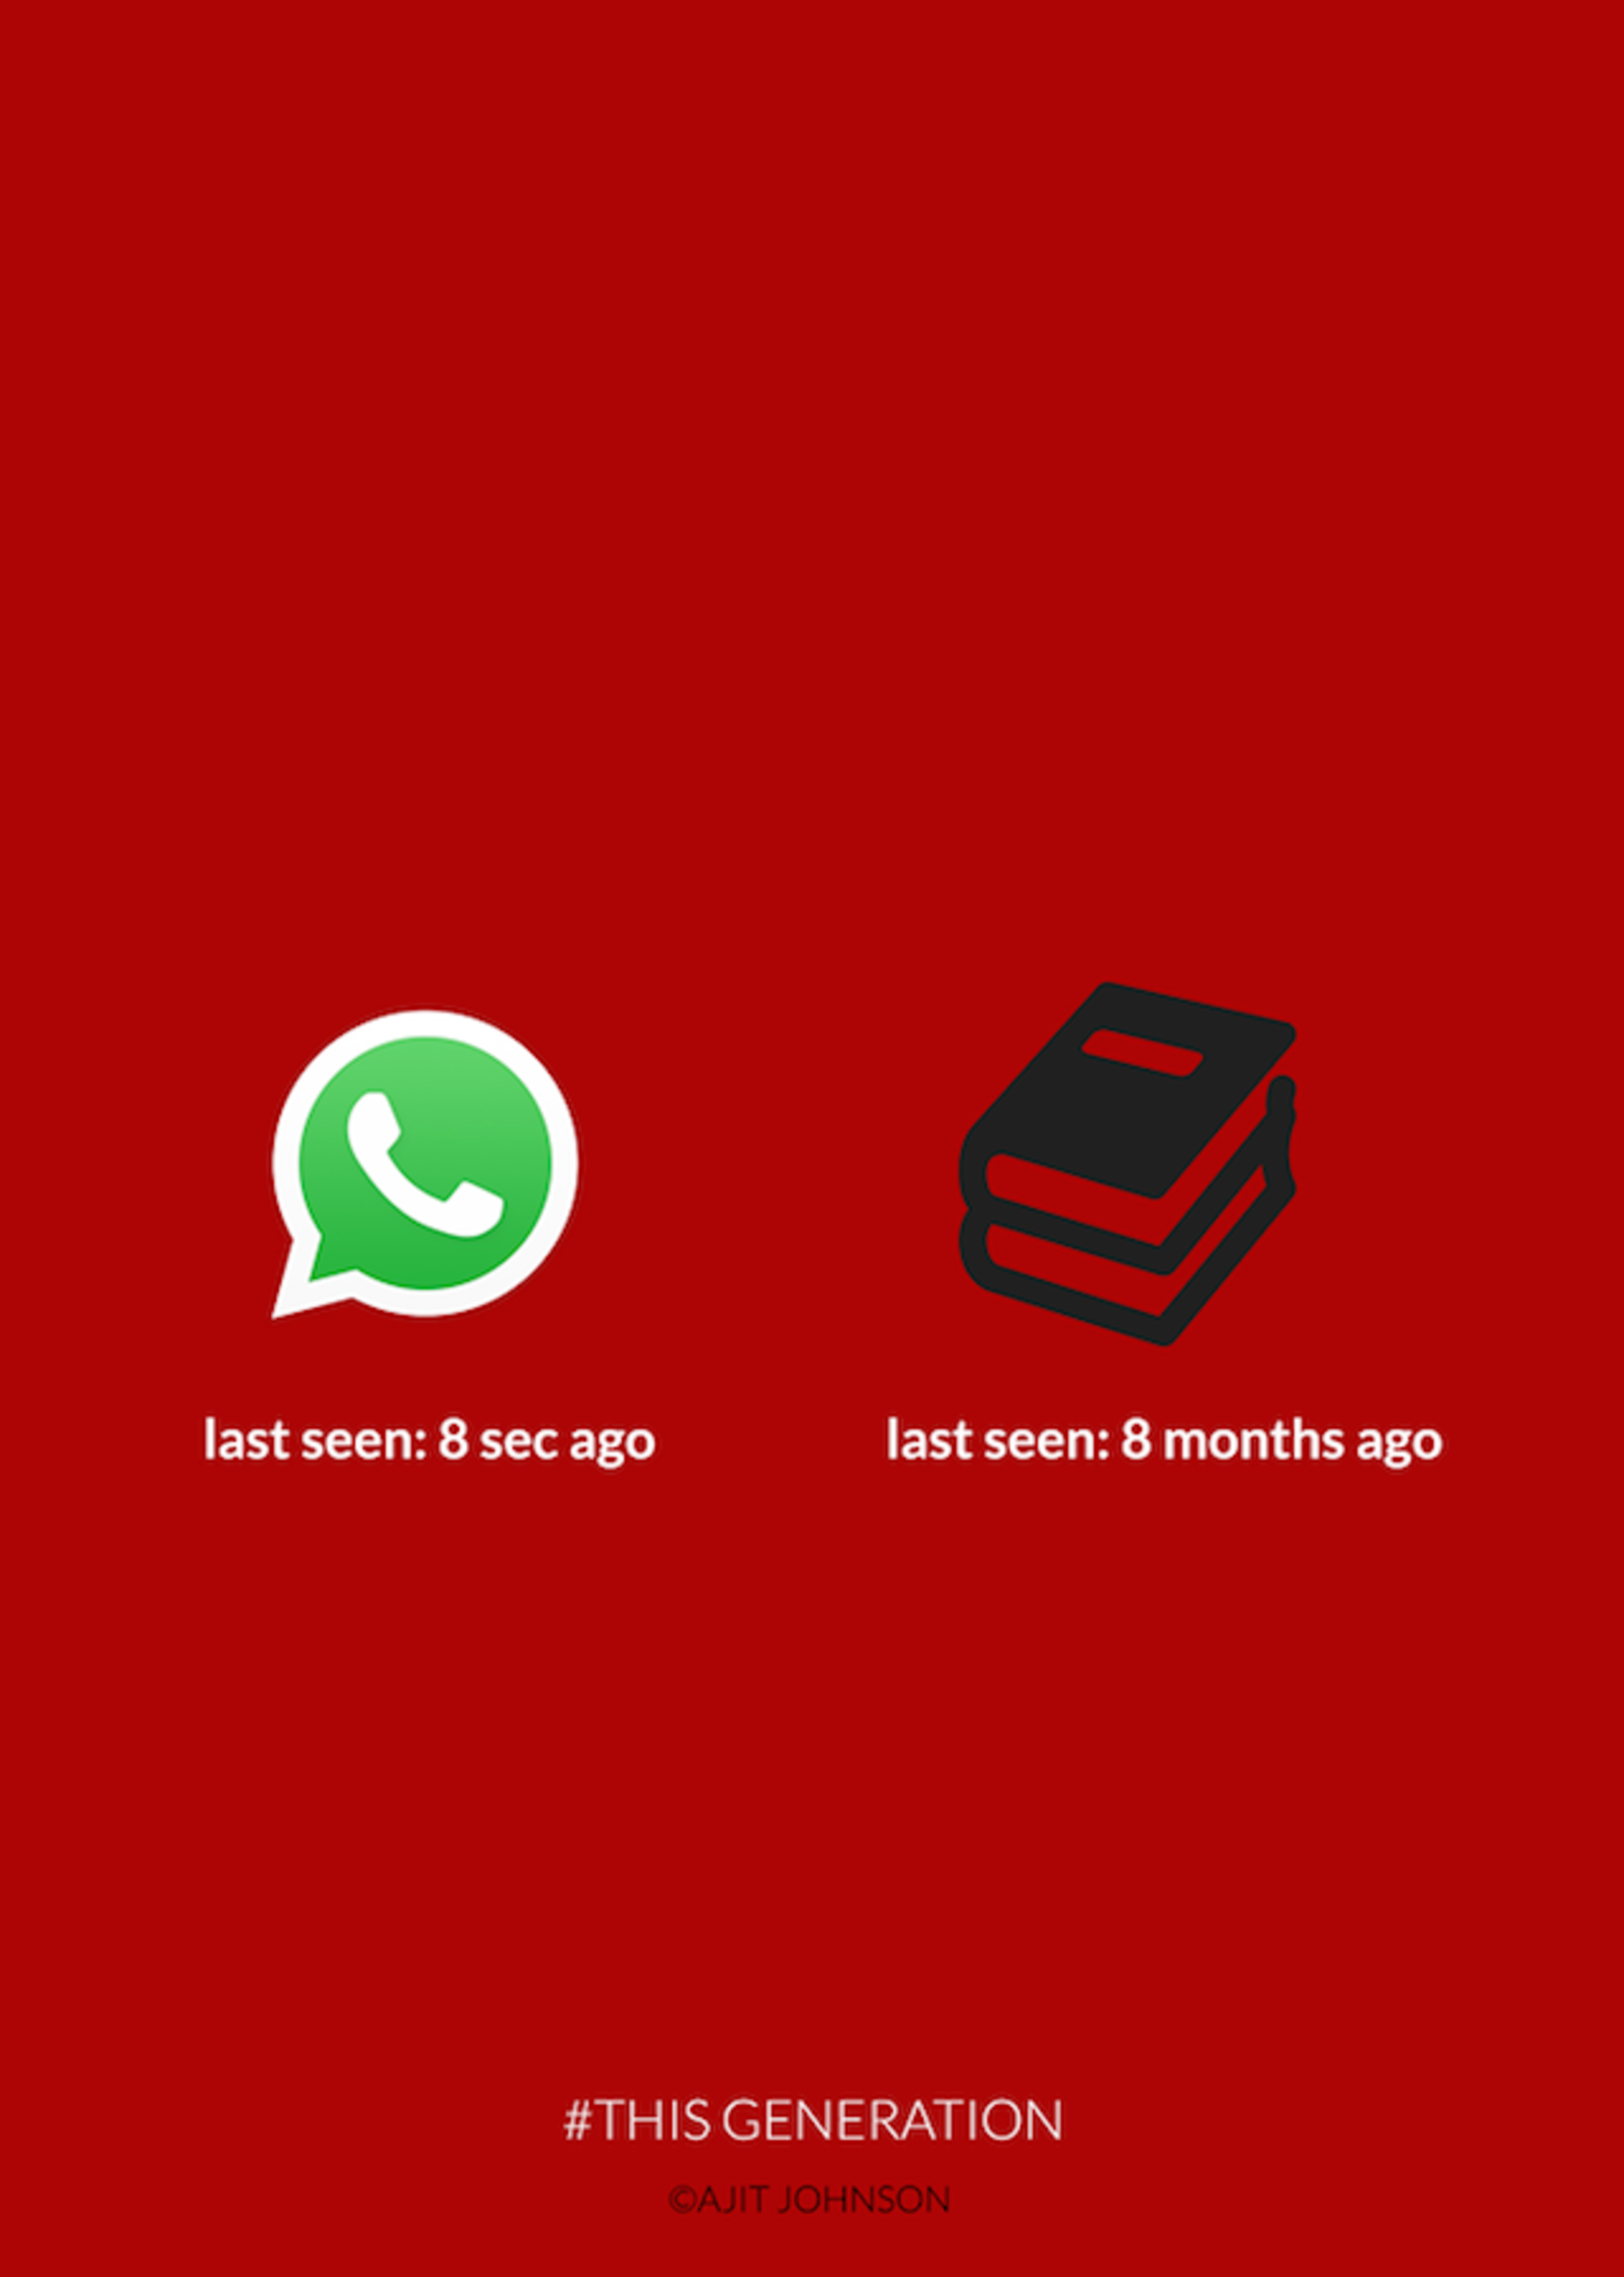 Honest Posters Of Our Relationship With Technology. Do we have a problem?